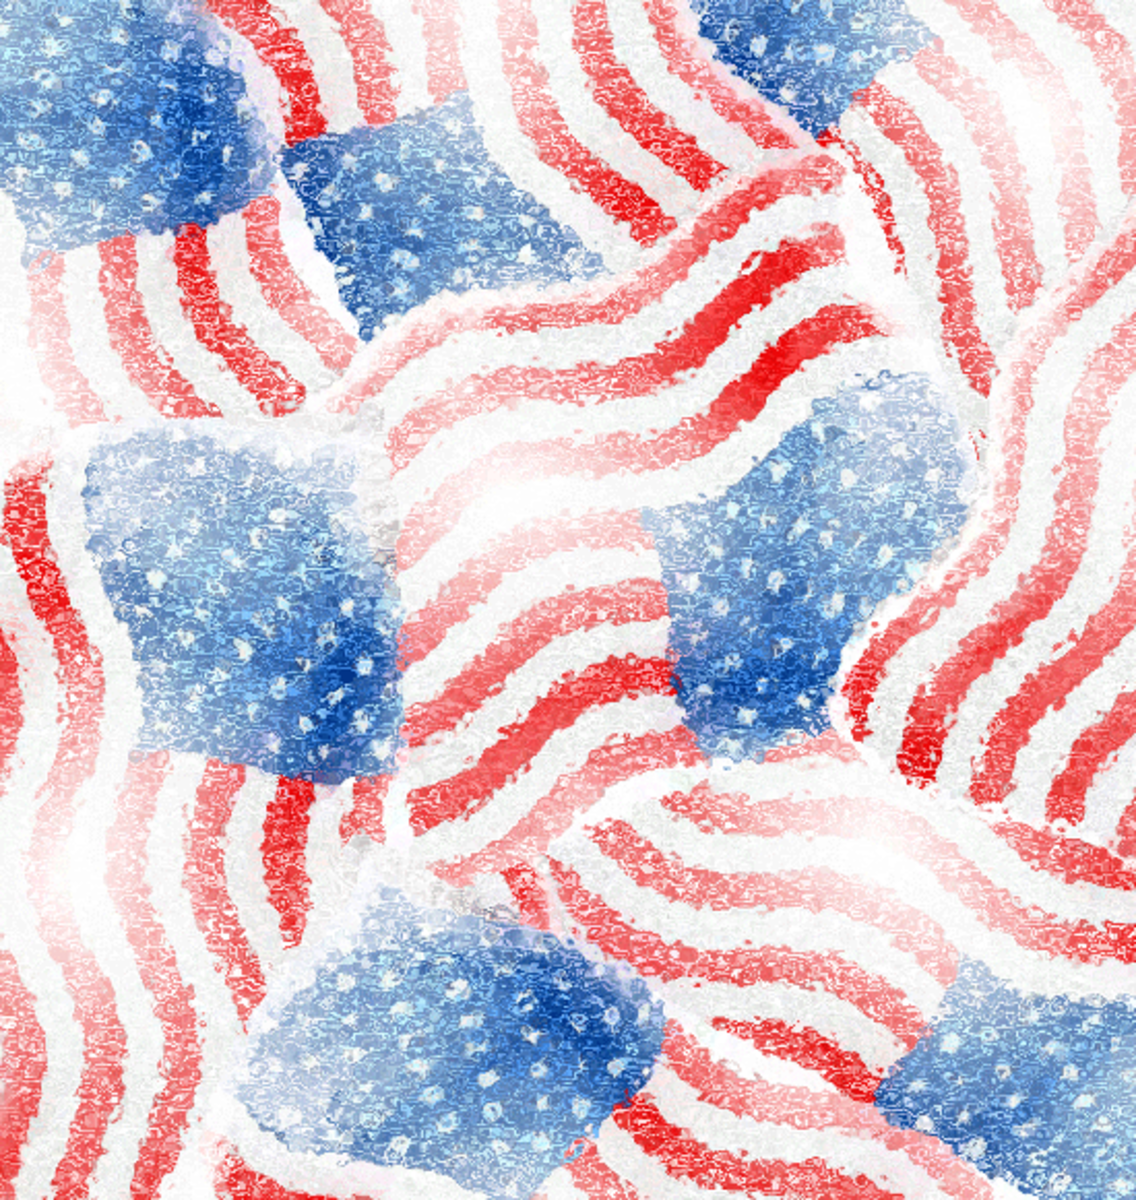 American flags clip art scrapbook pattern.